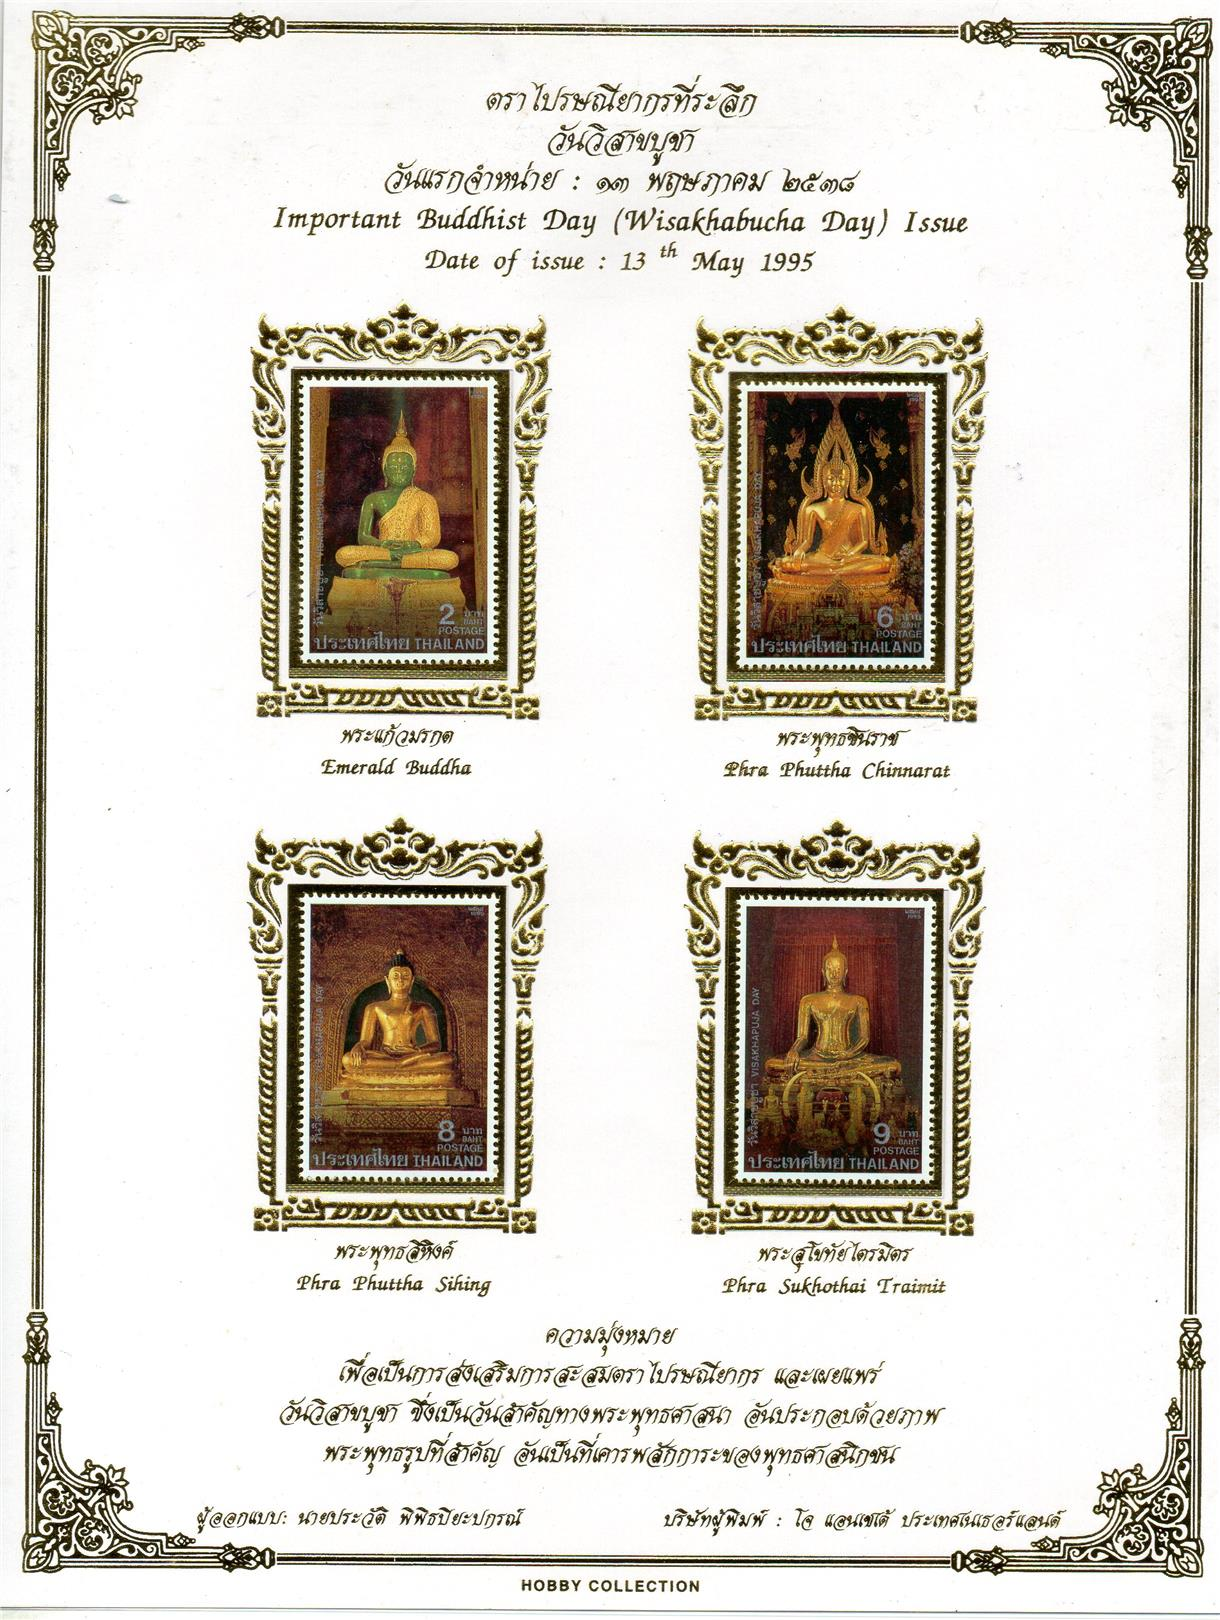 Wisakhabucha Day 1995 Stamp Hobby Collection